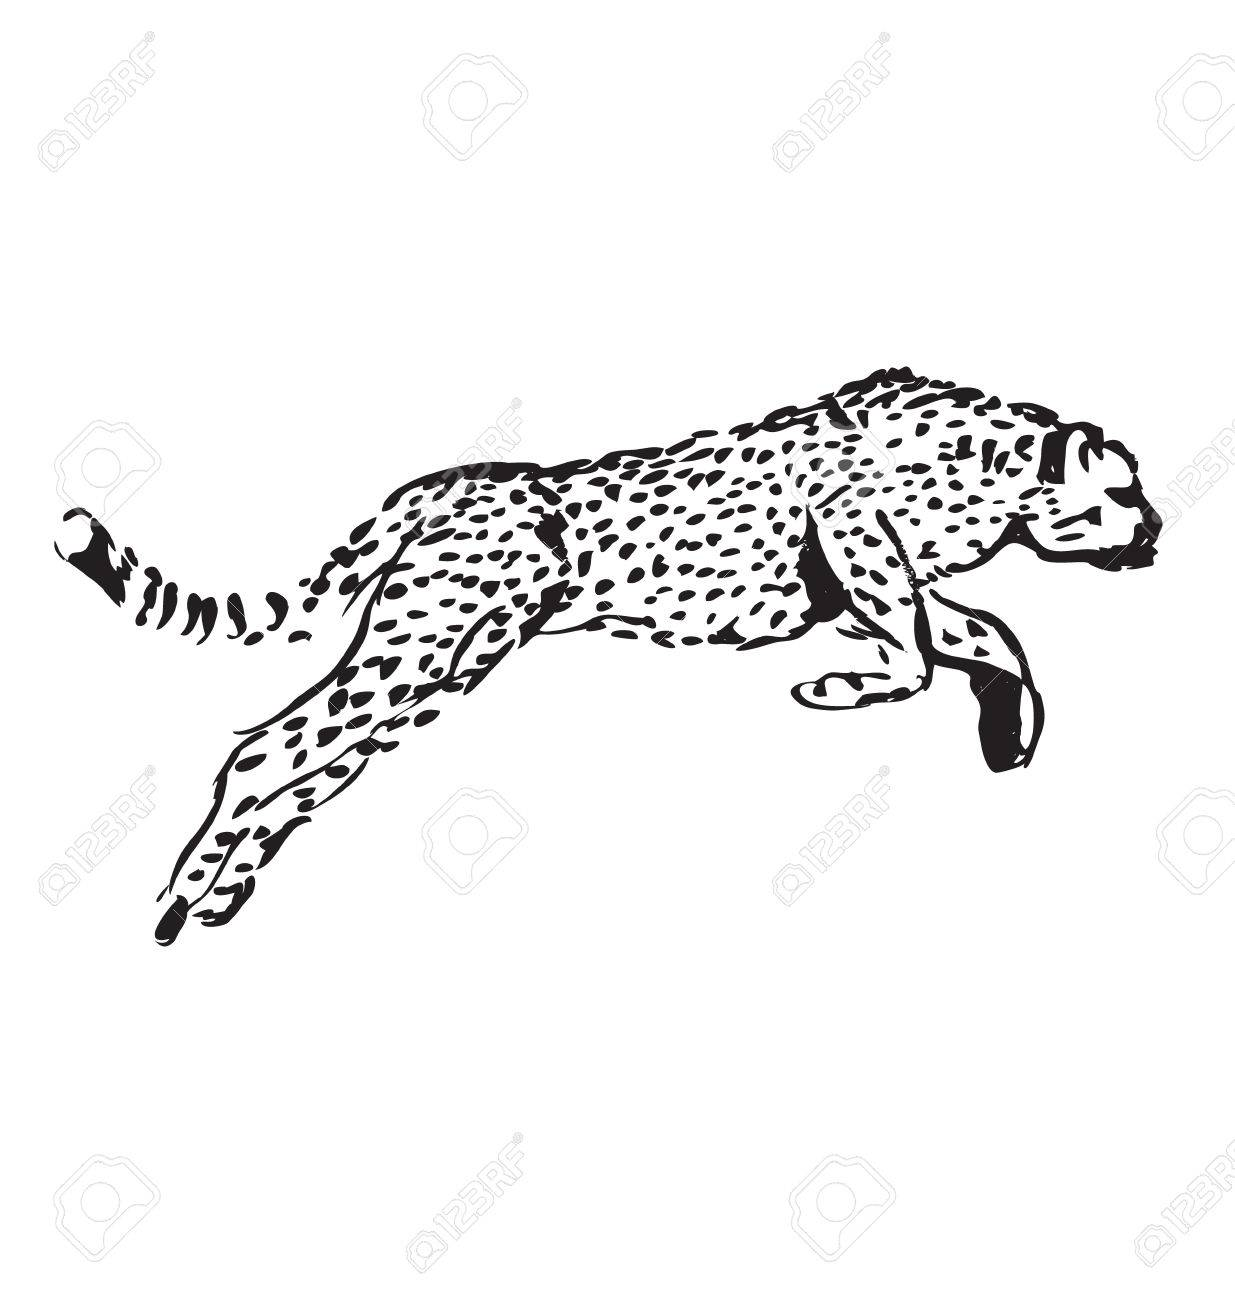 1235x1300 Hand Sketch Leaping Jaguar Royalty Free Cliparts, Vectors,